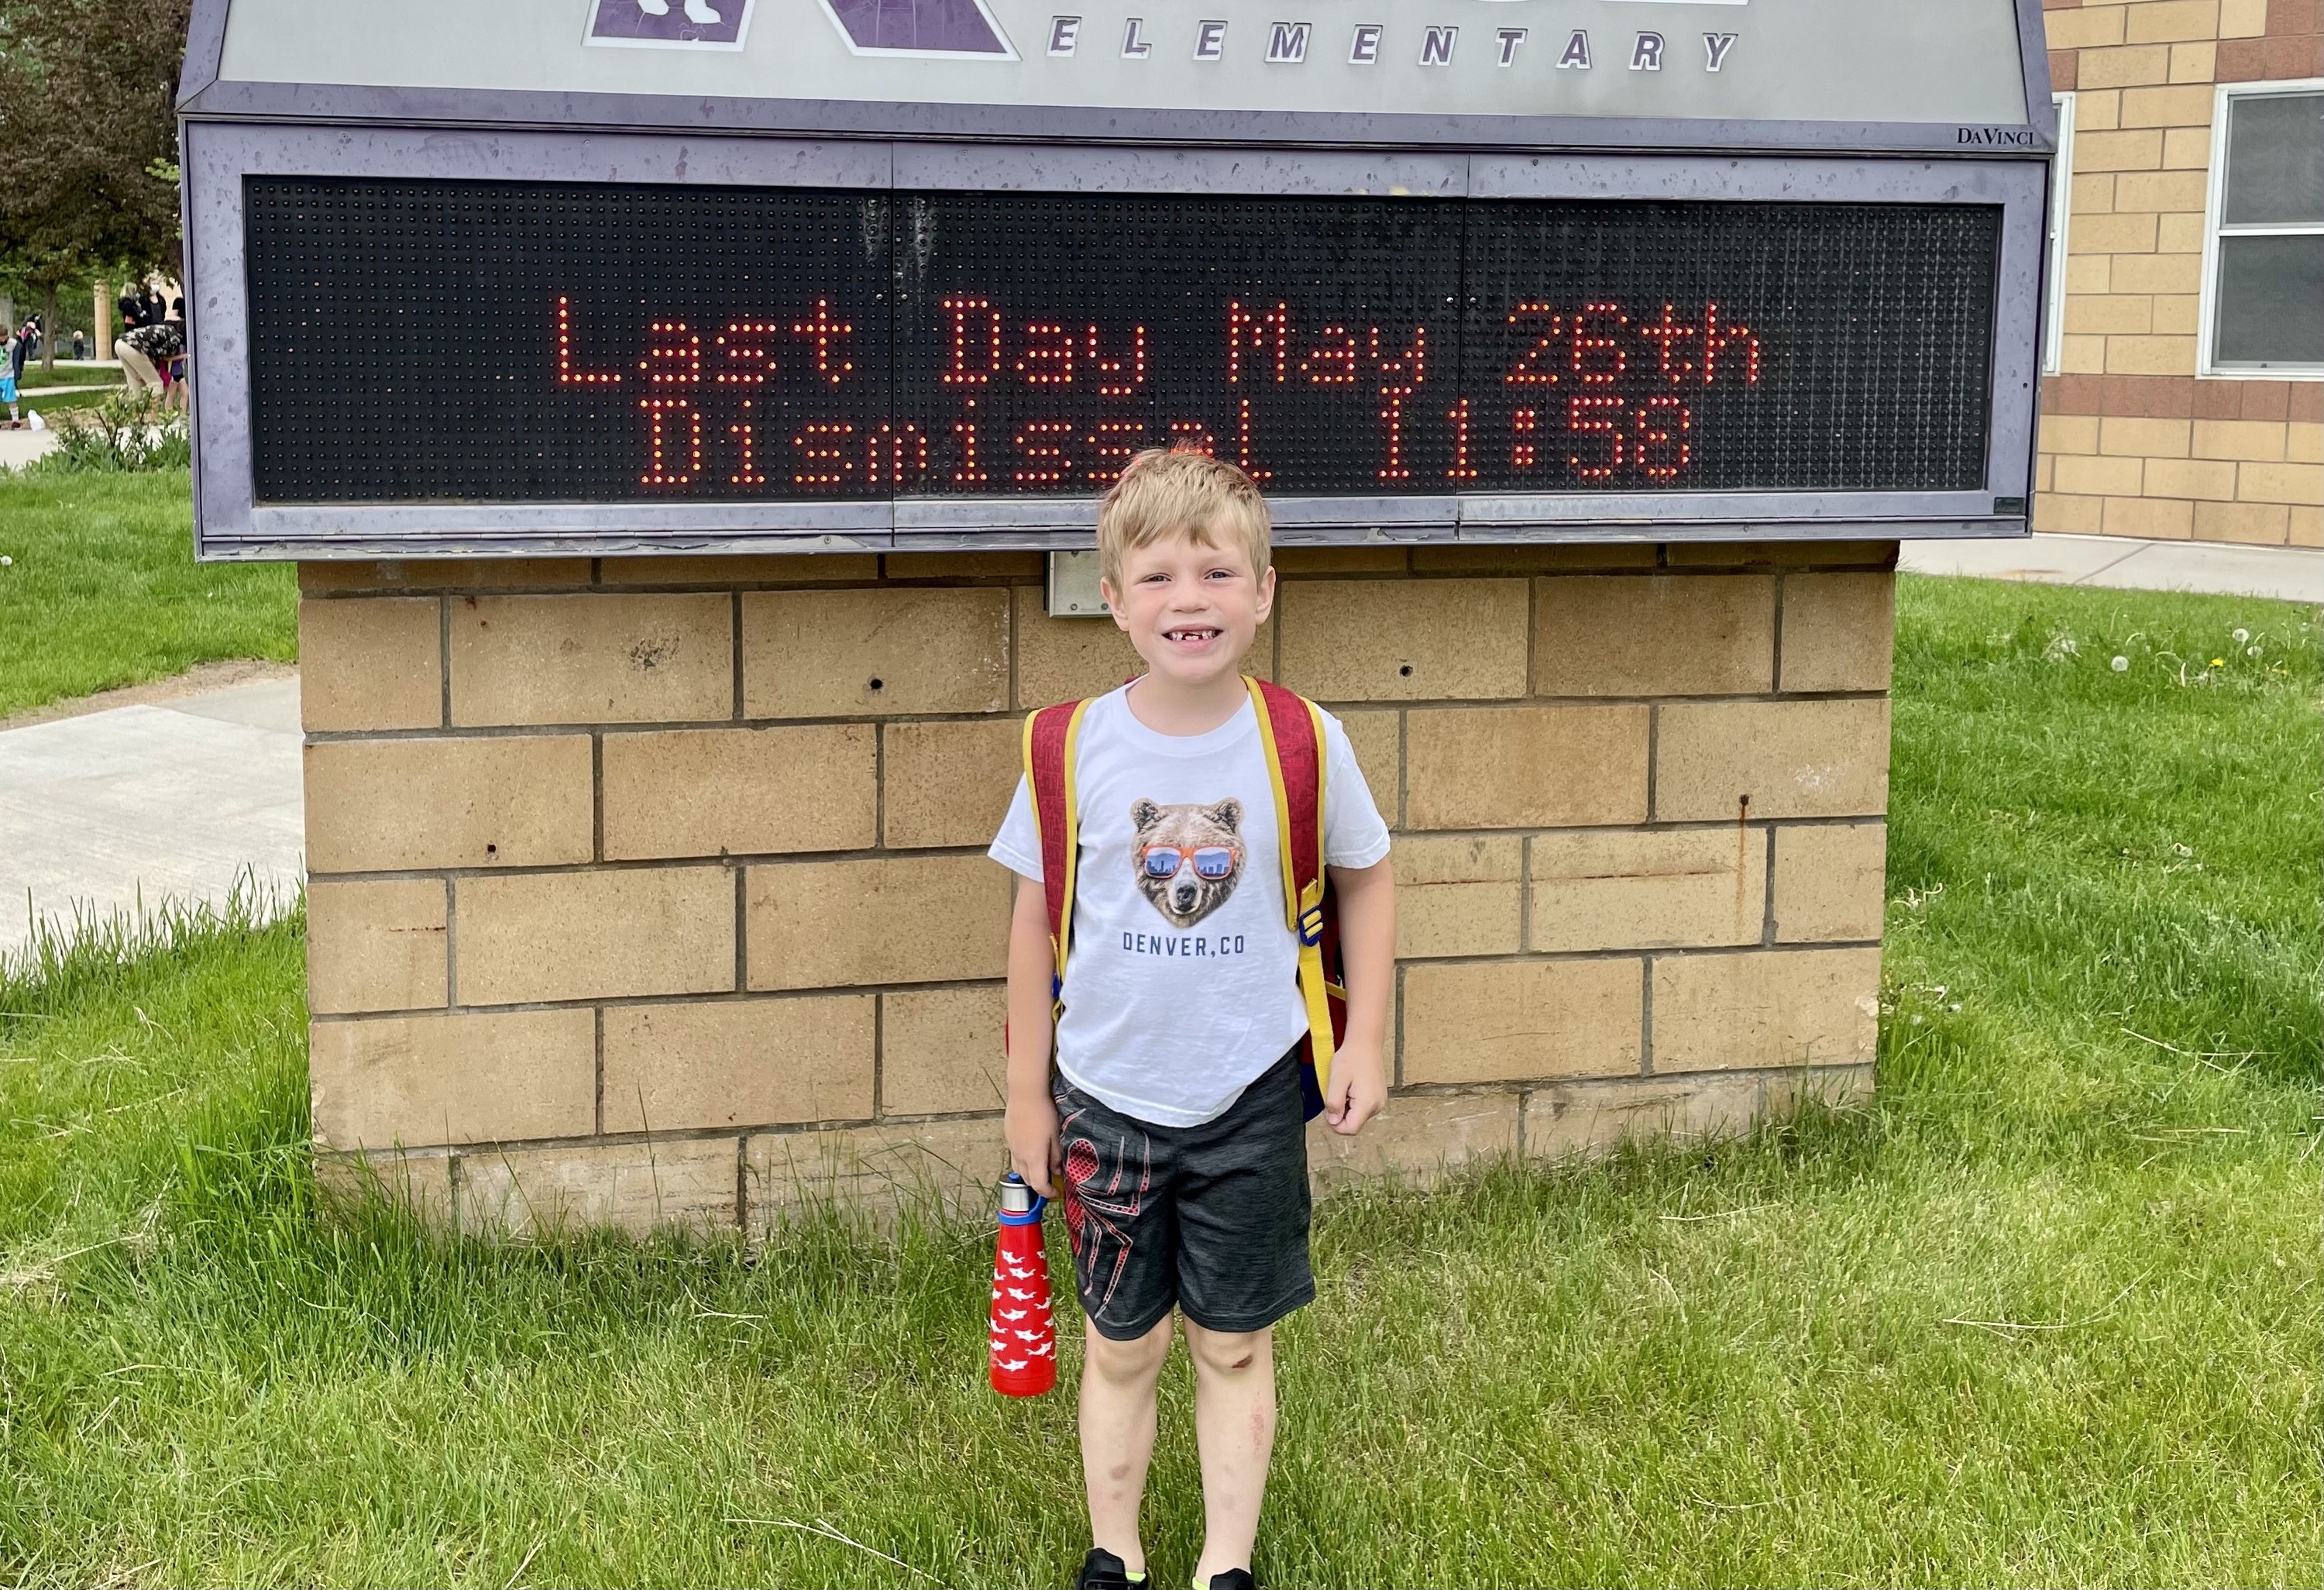 The author's oldest kid smiling on his last day of school